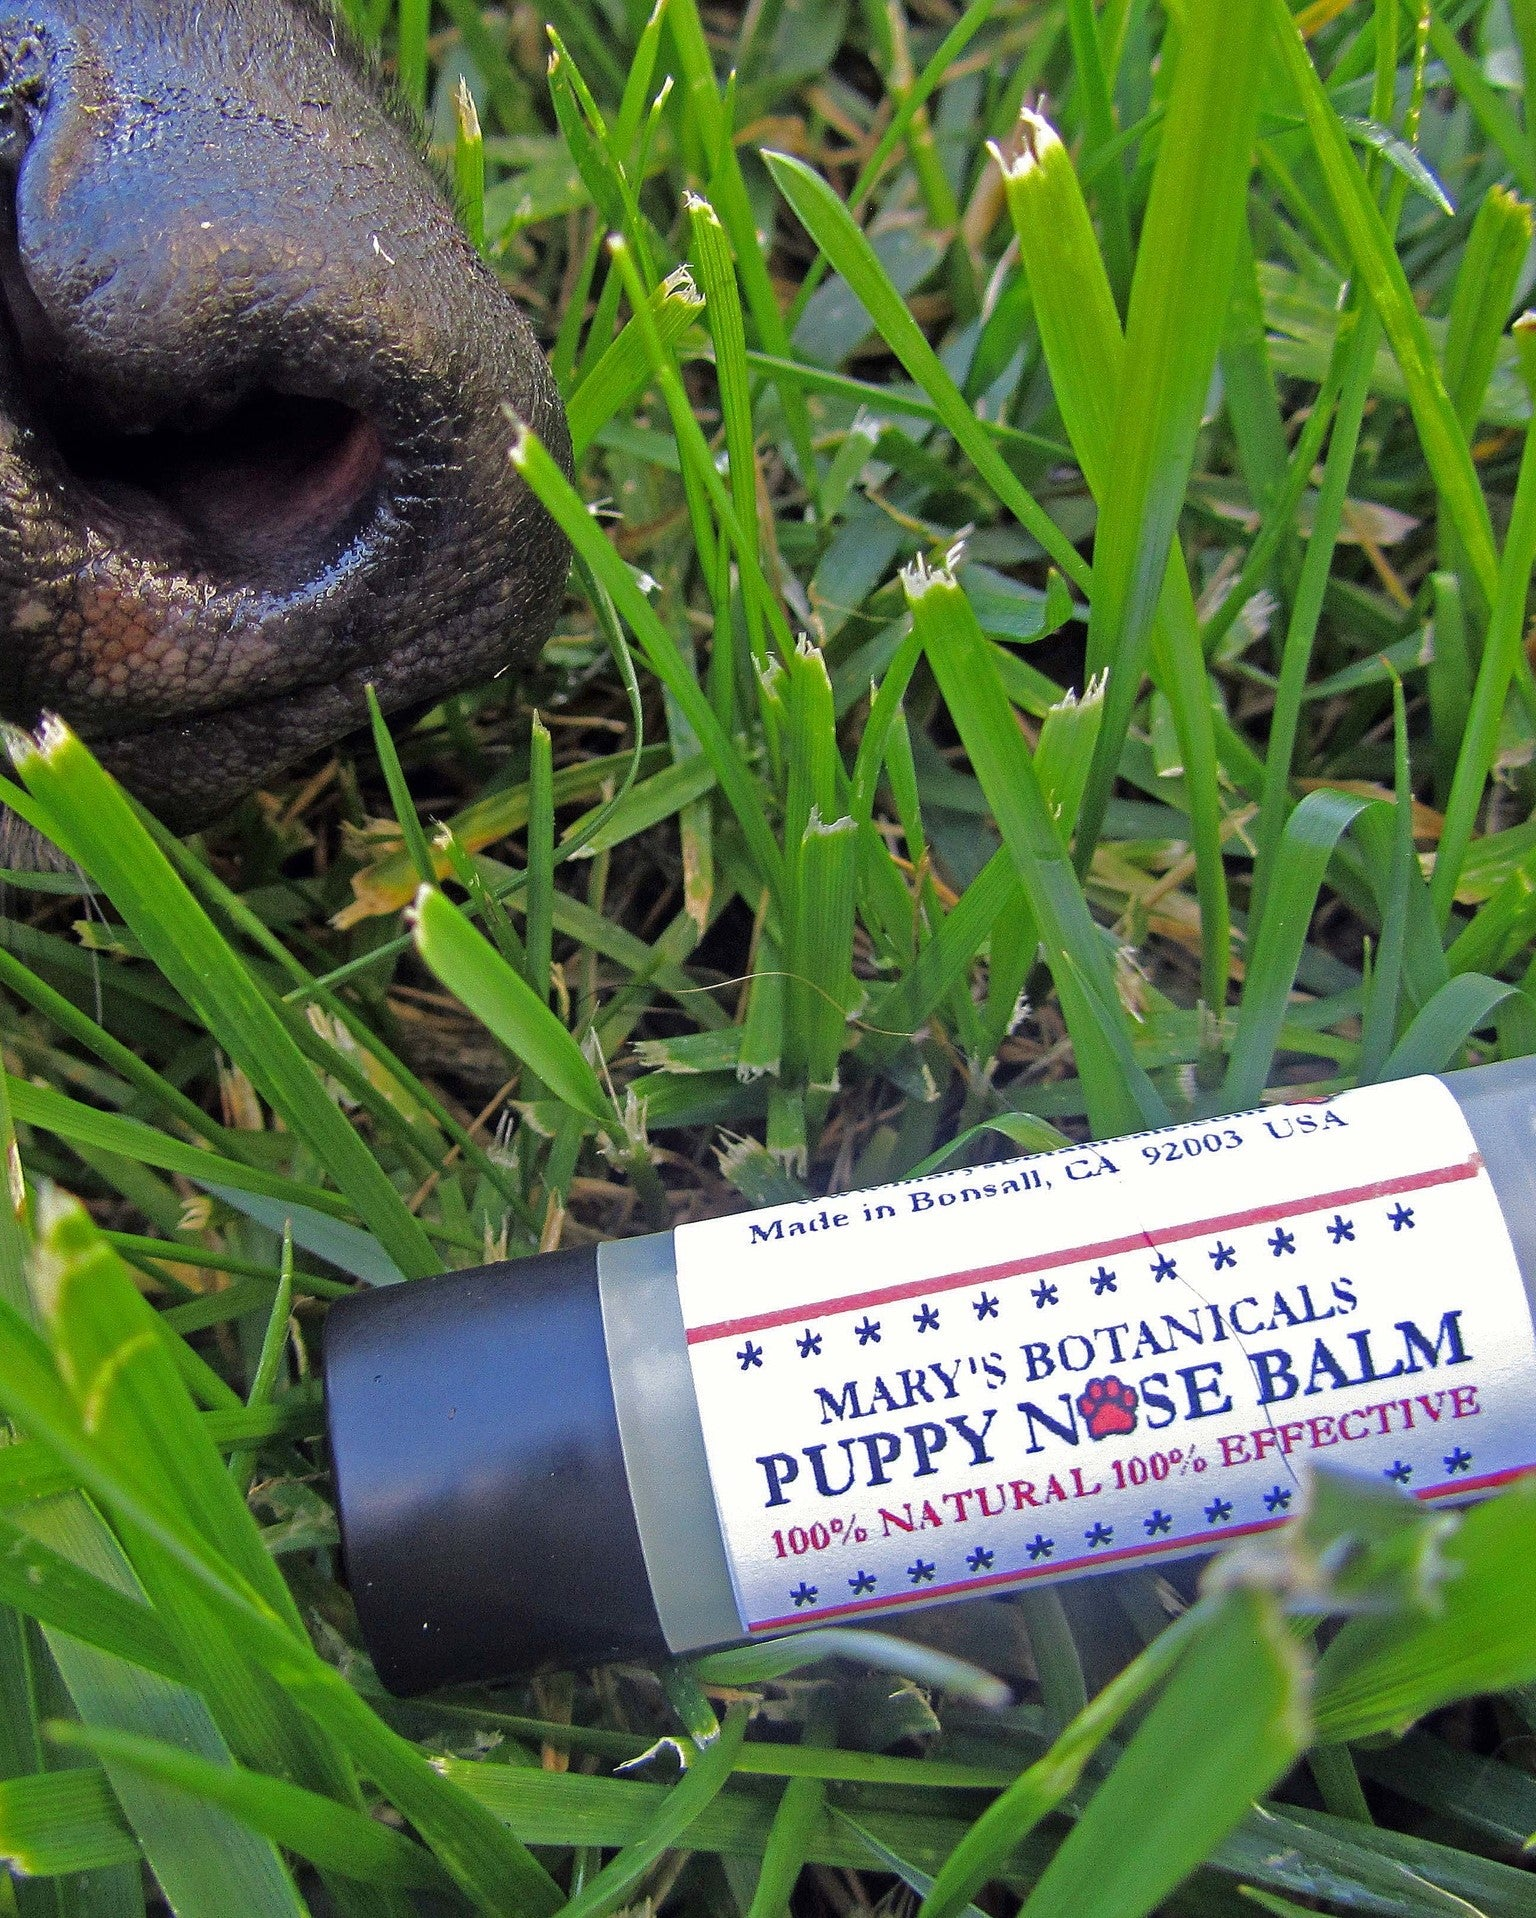 Puppy Nose Balm .15 oz-Mary's Botanicals